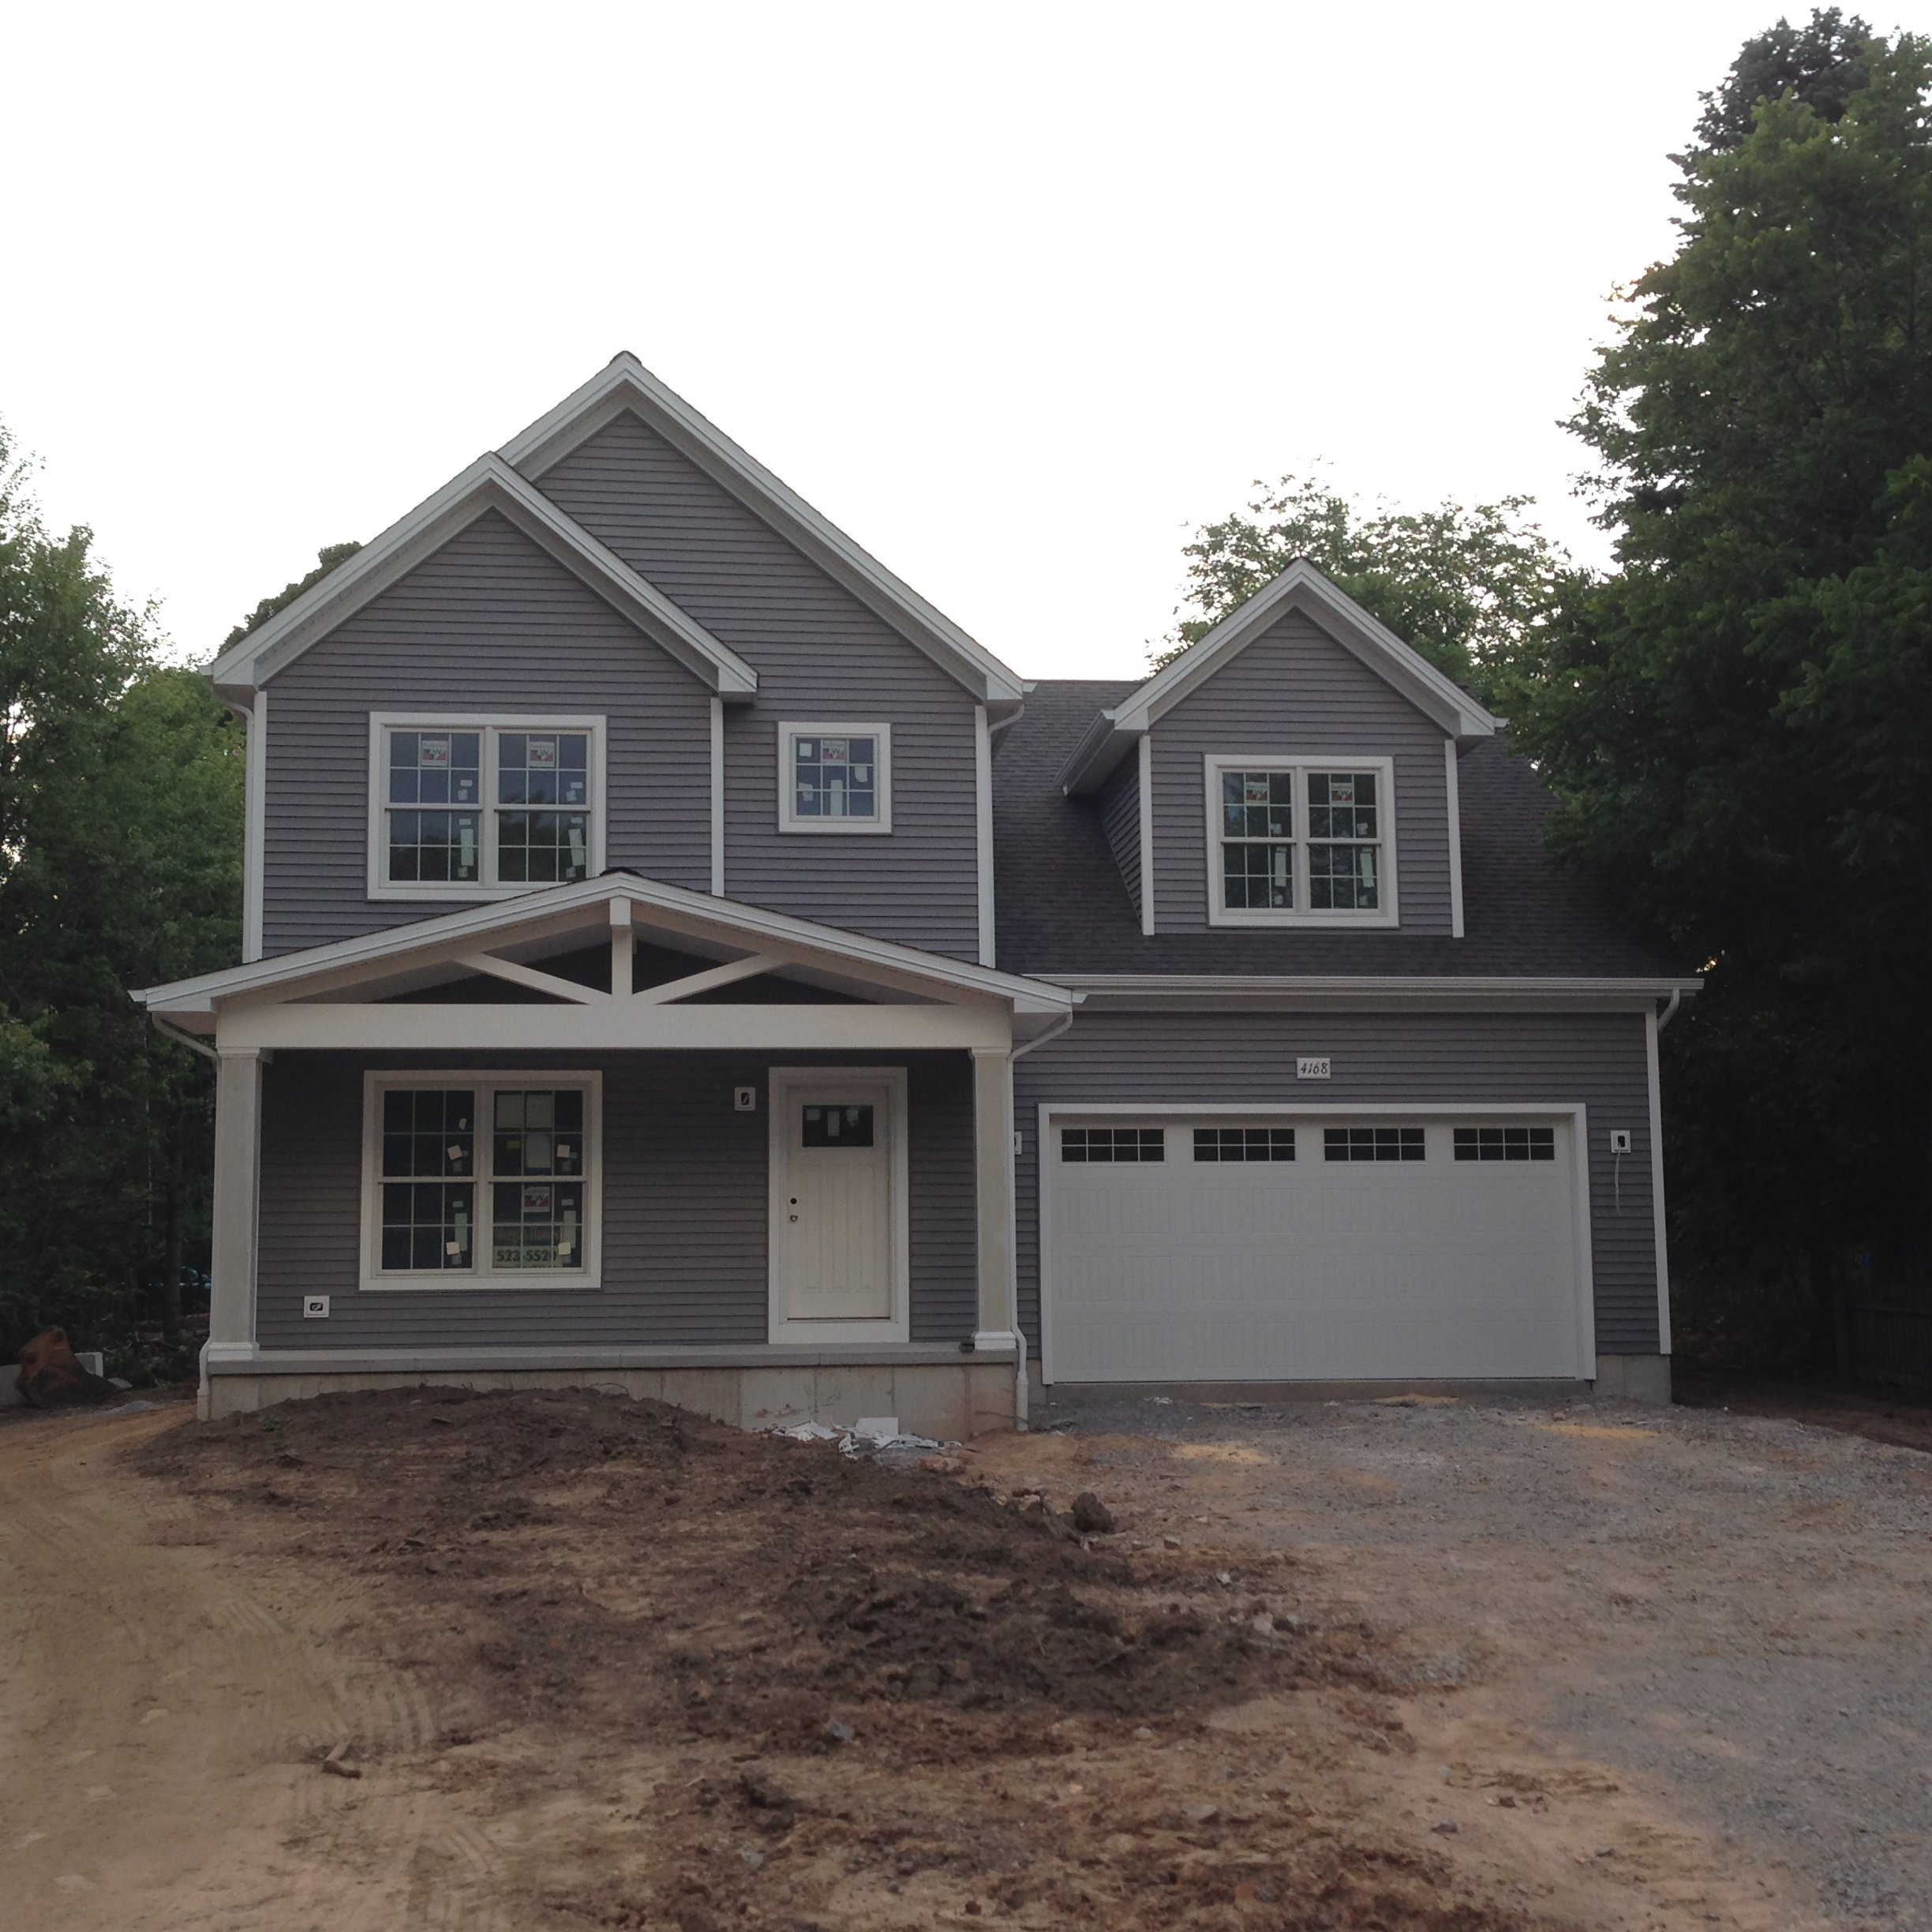 Wildwood Dr. New Home Construction - Clarence, NY